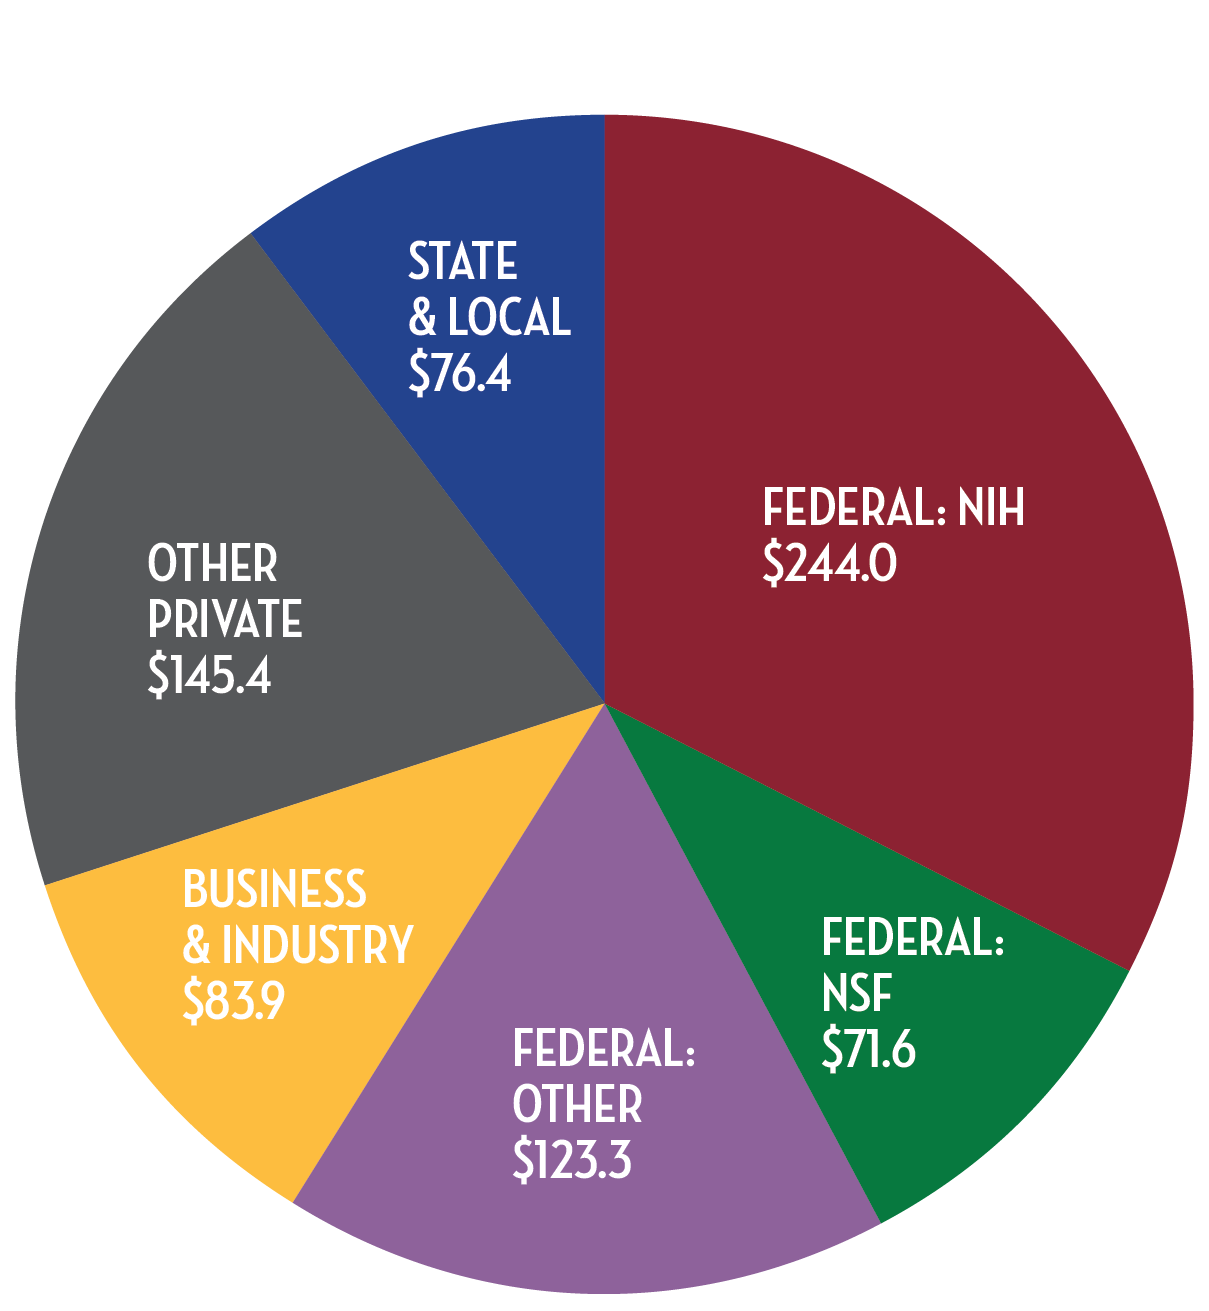 Pie chart: Federal (NIH) = 244.0; Other Private = $145.4; Federal (other) = $123.3; Business & Industry = $83.9; State & Local = $76.4; Federal (NSF) $71.6